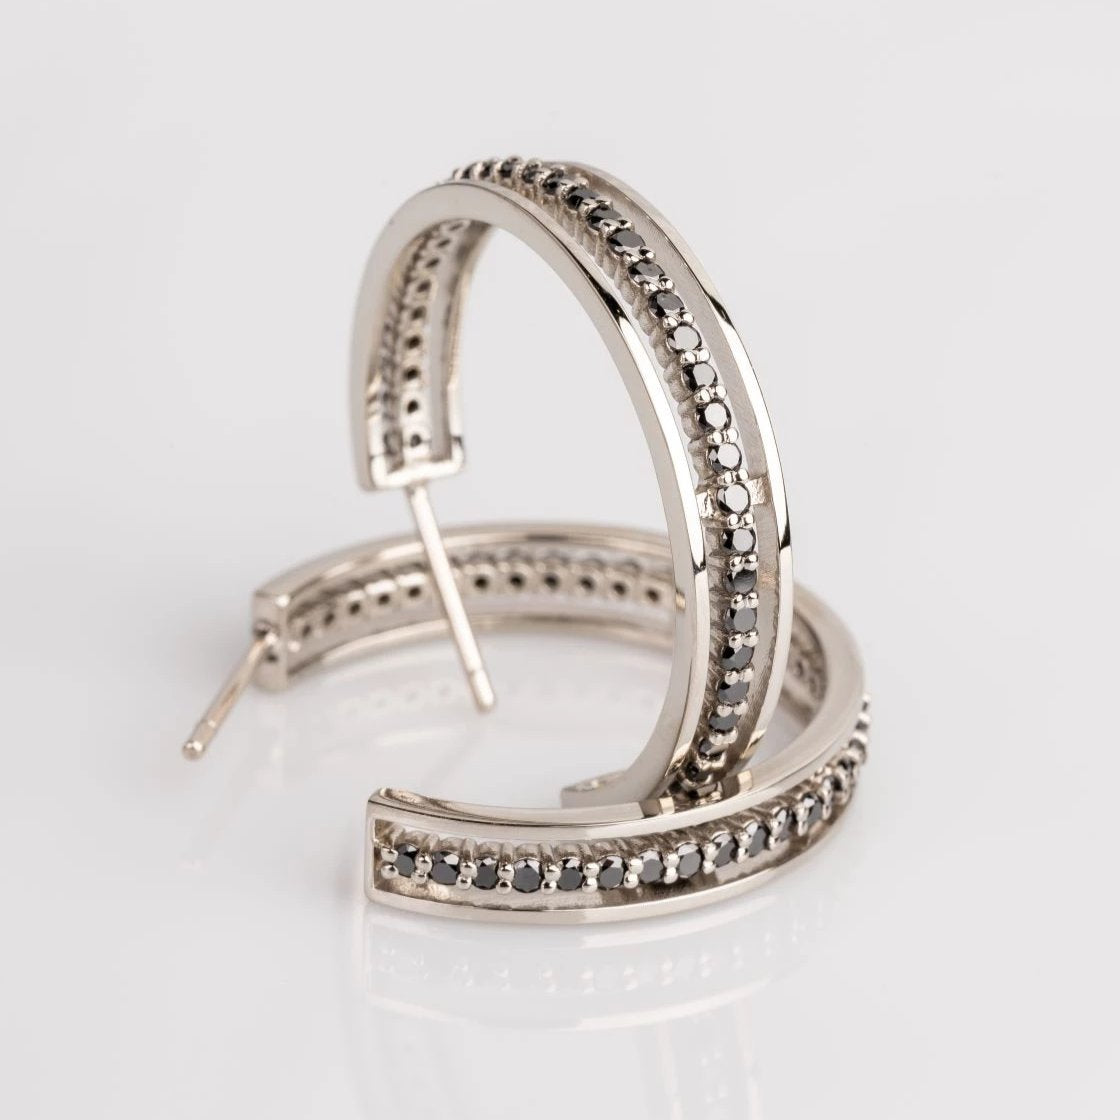 18K white gold black diamond floating eternity hoops, sydney strong, greenville, south carolina